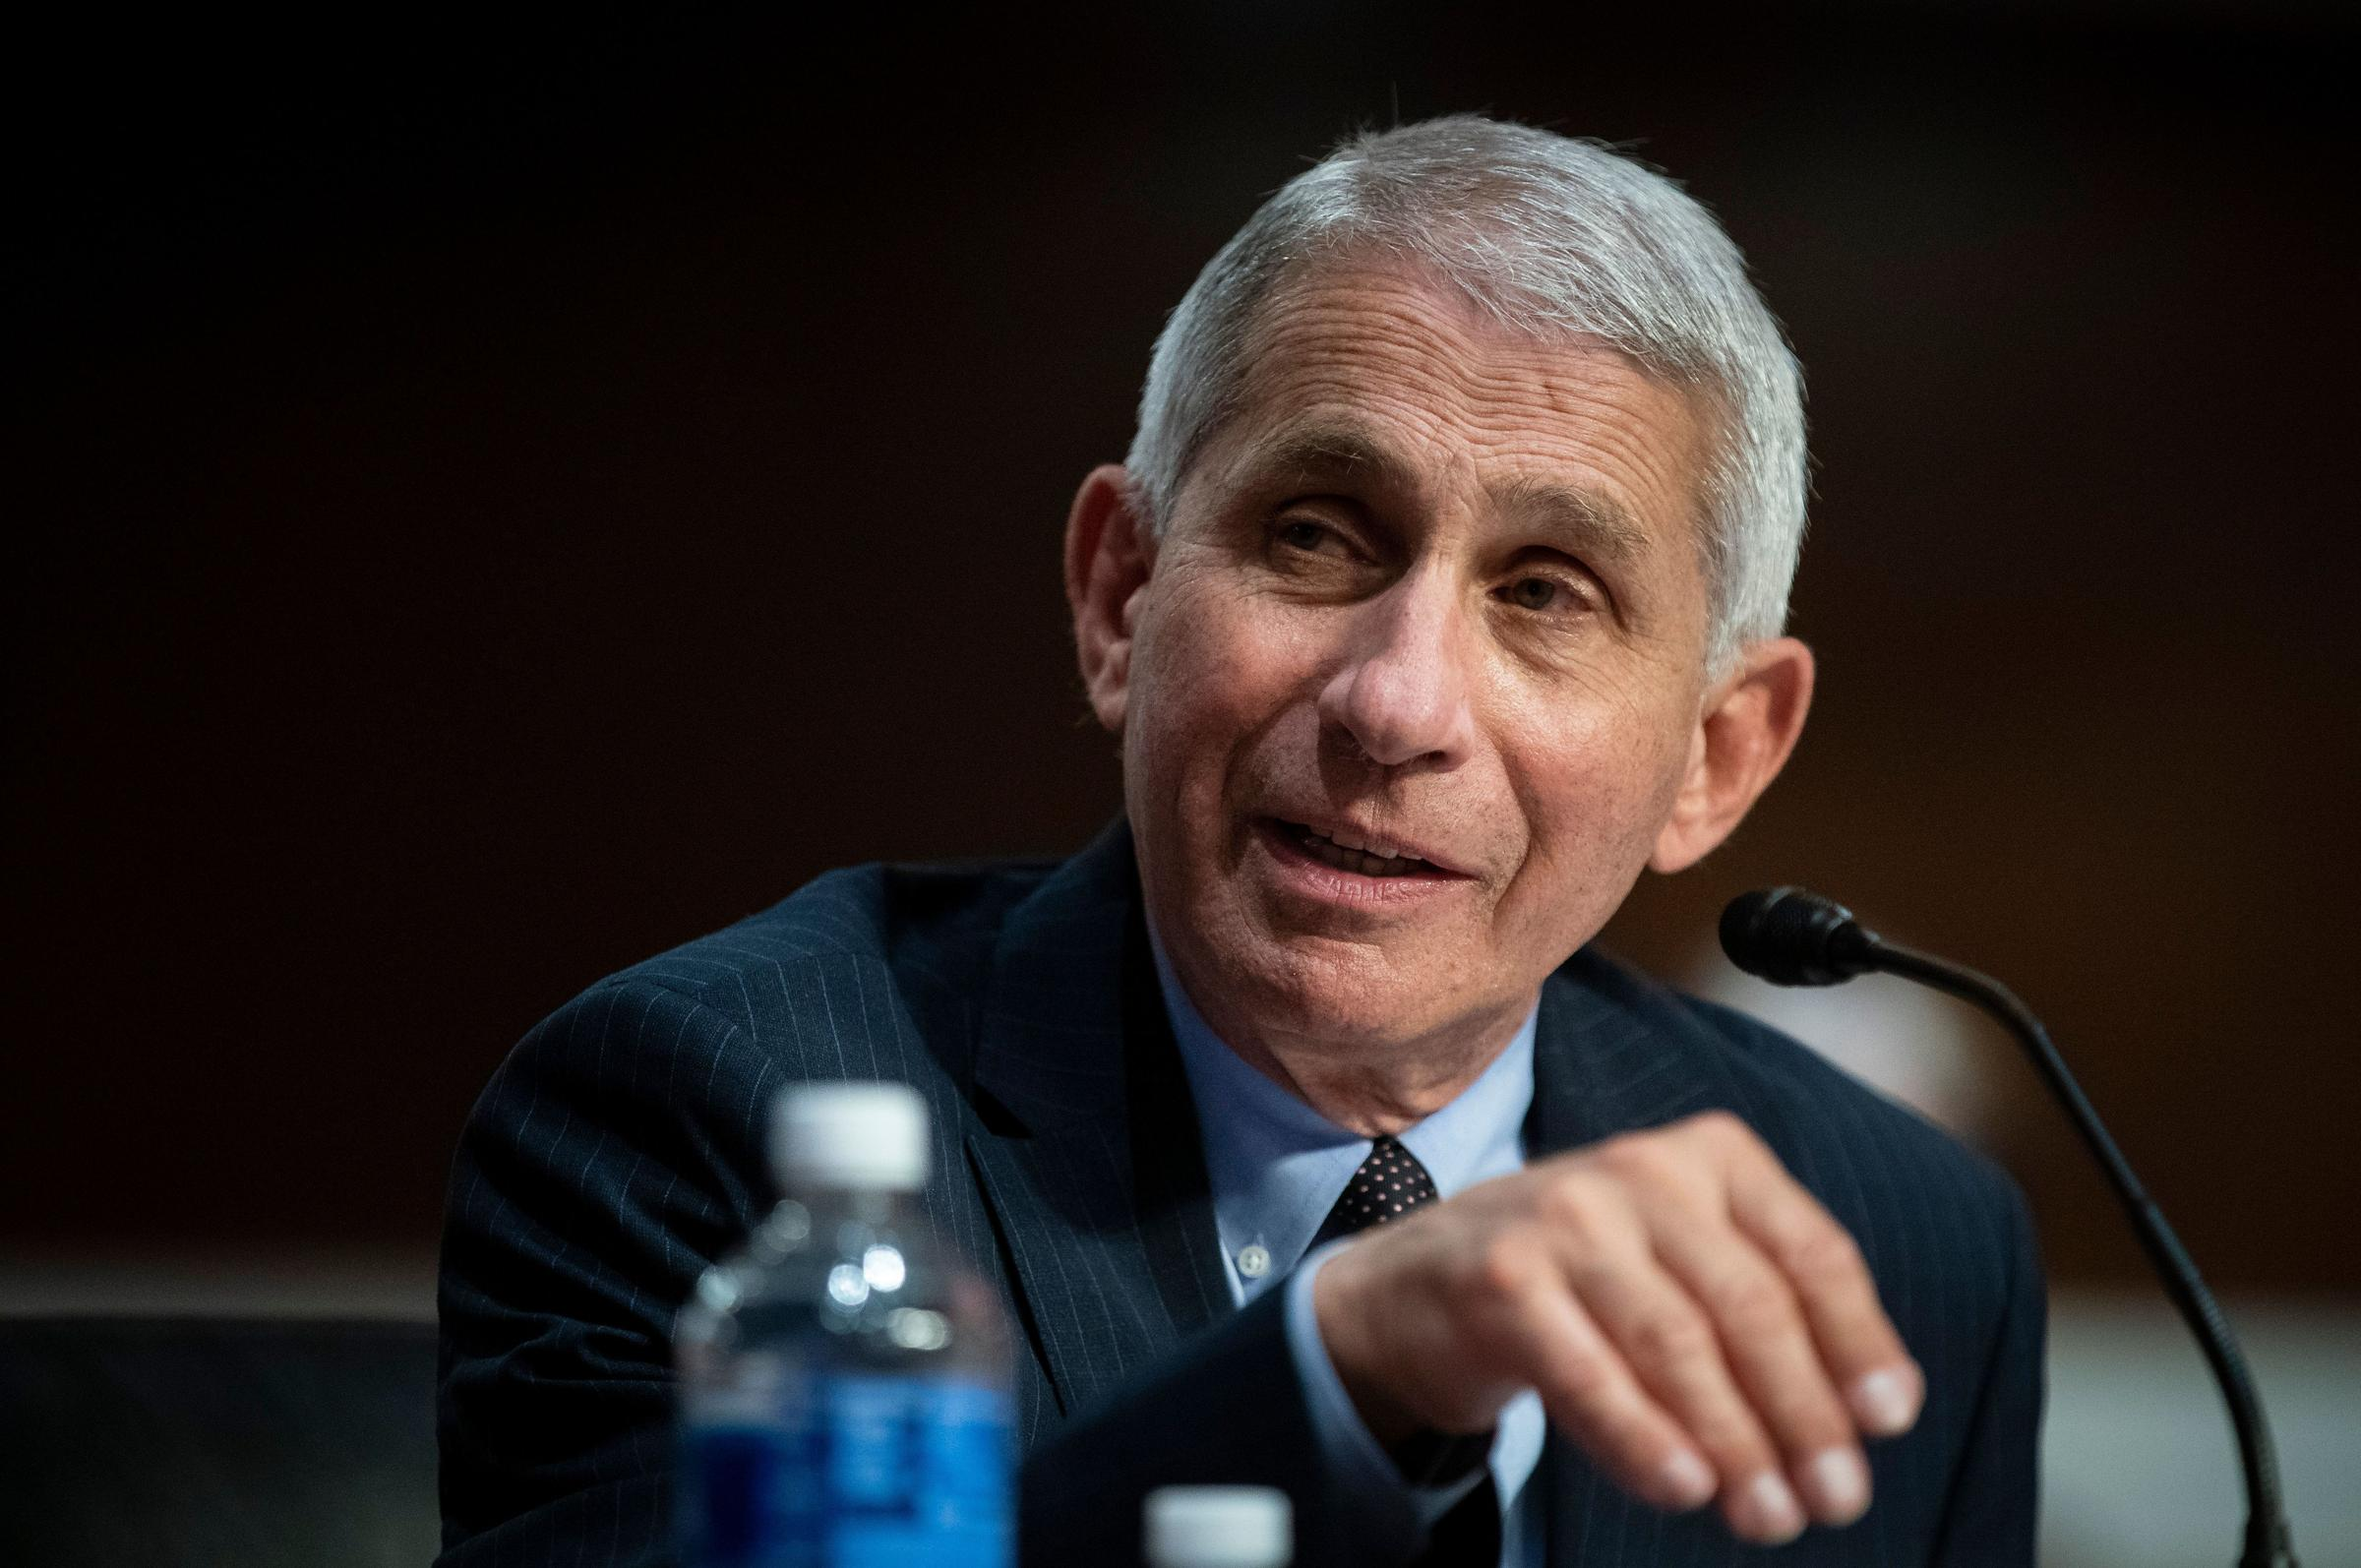 White House officials raise questions about Fauci